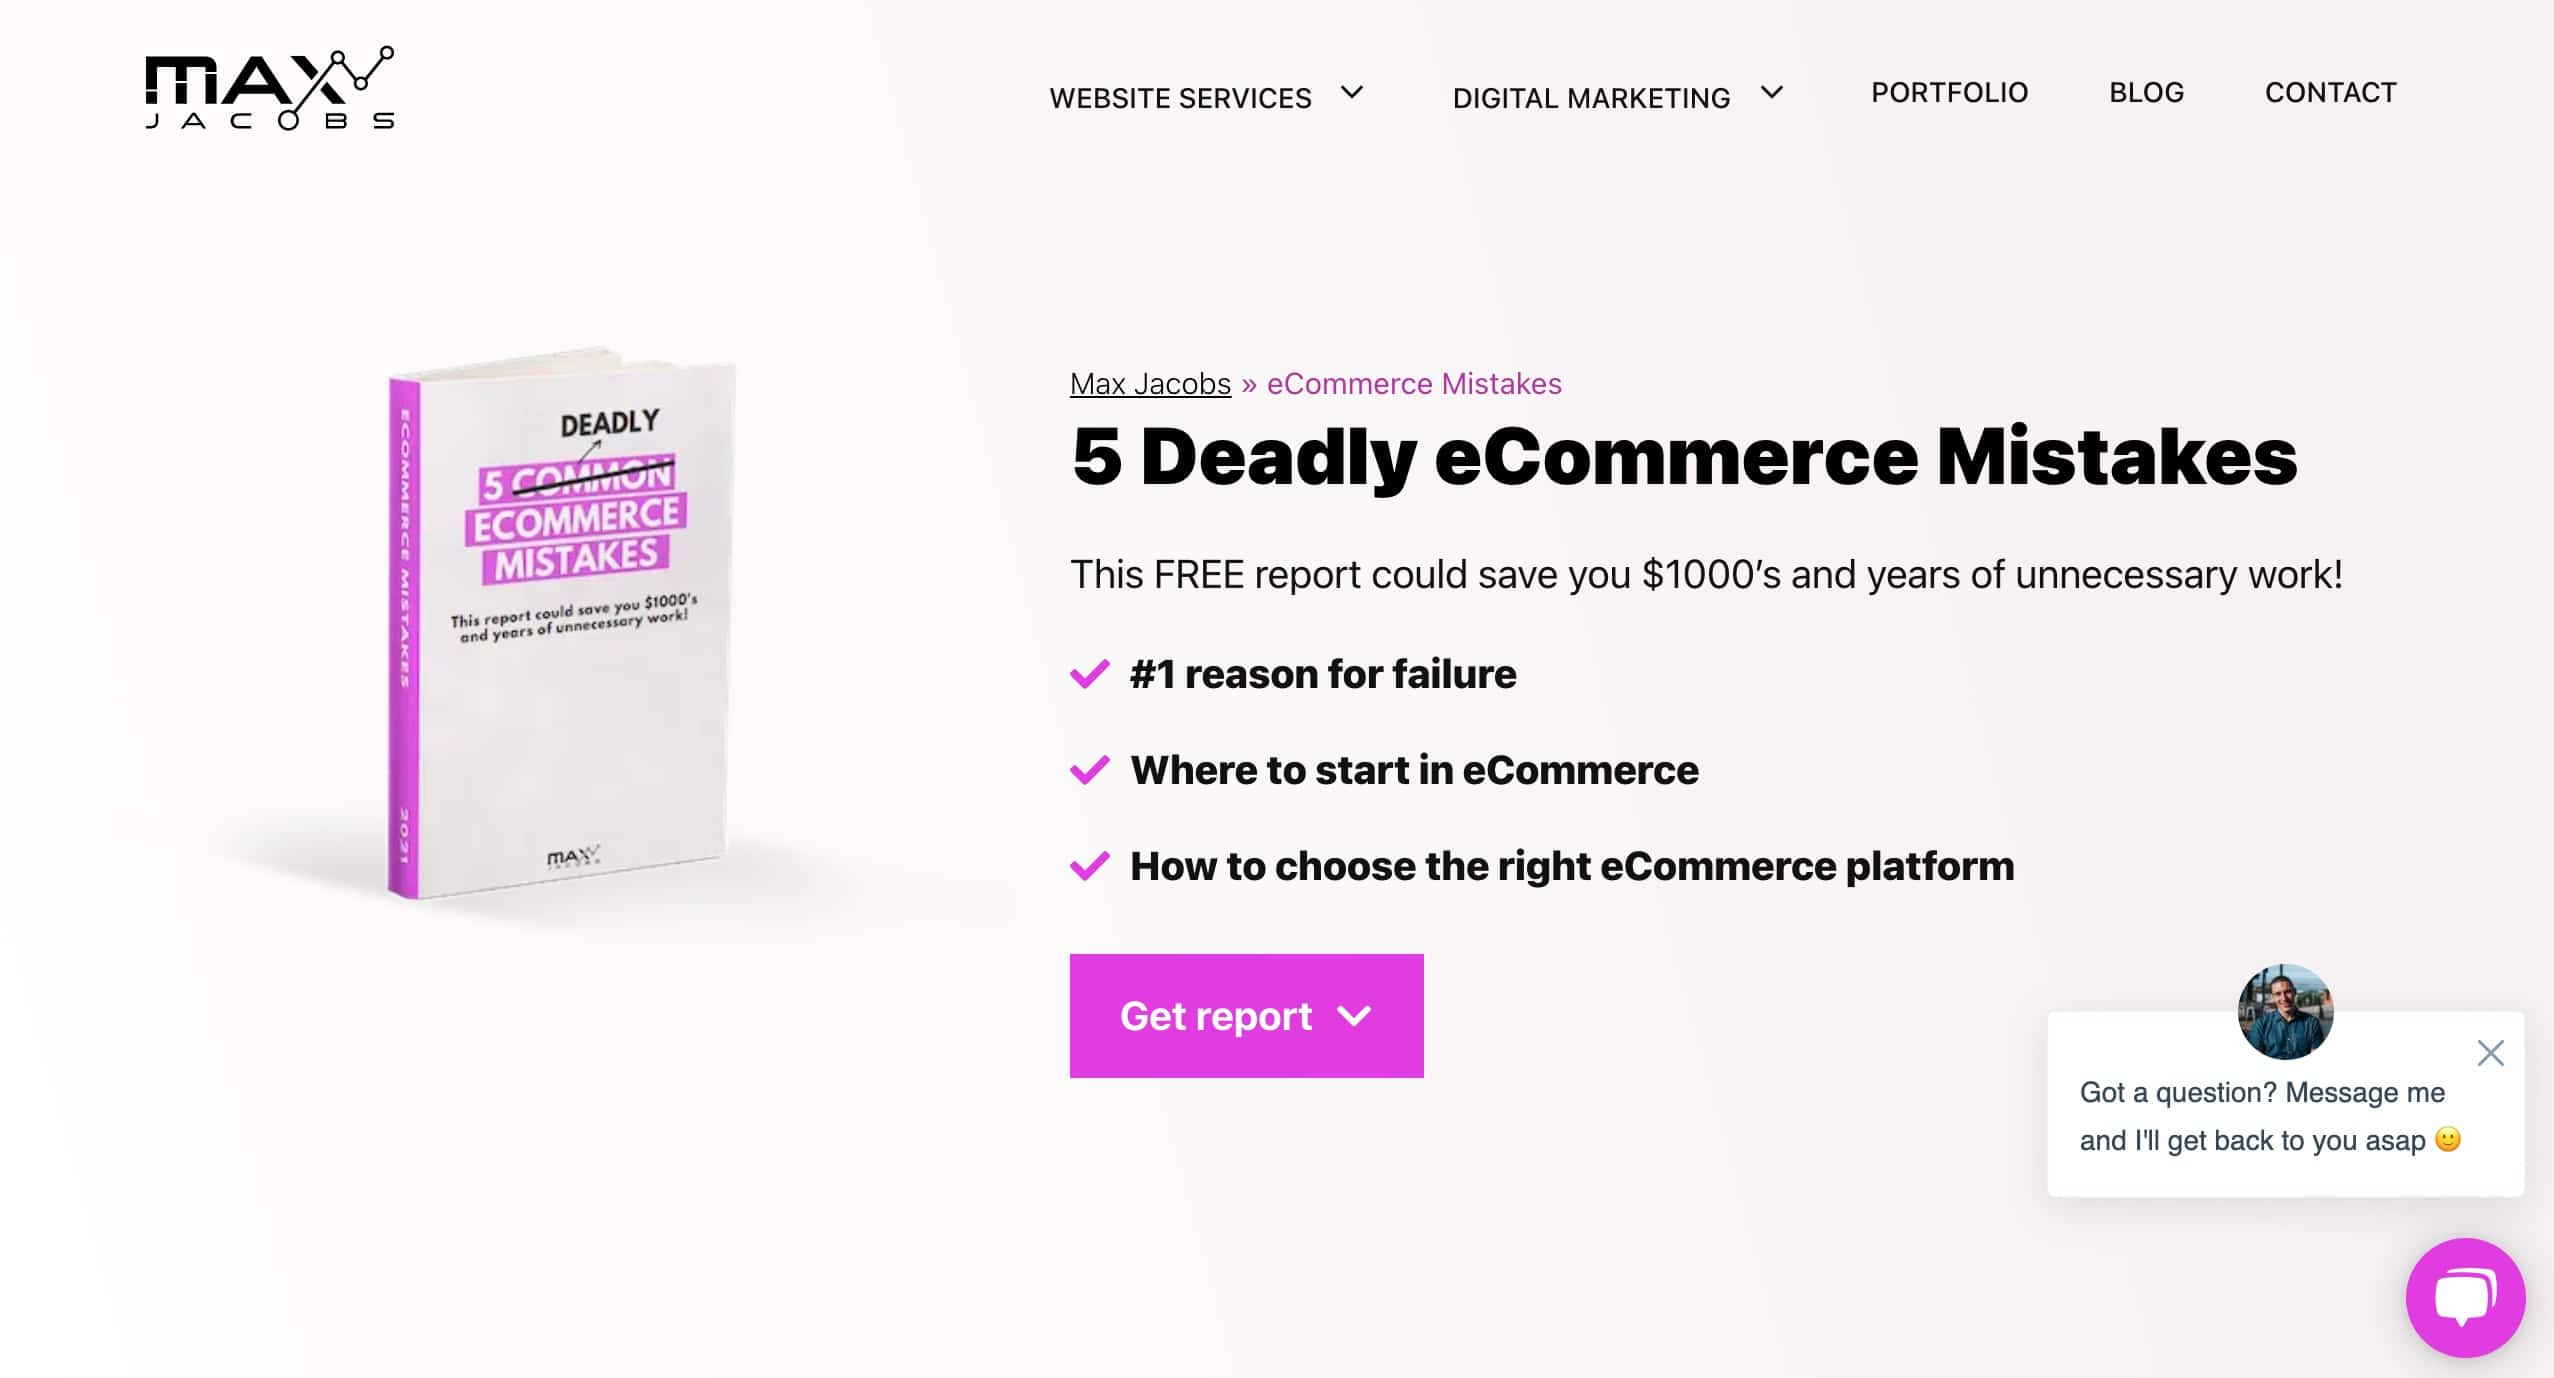 eCommerce Mistakes Report